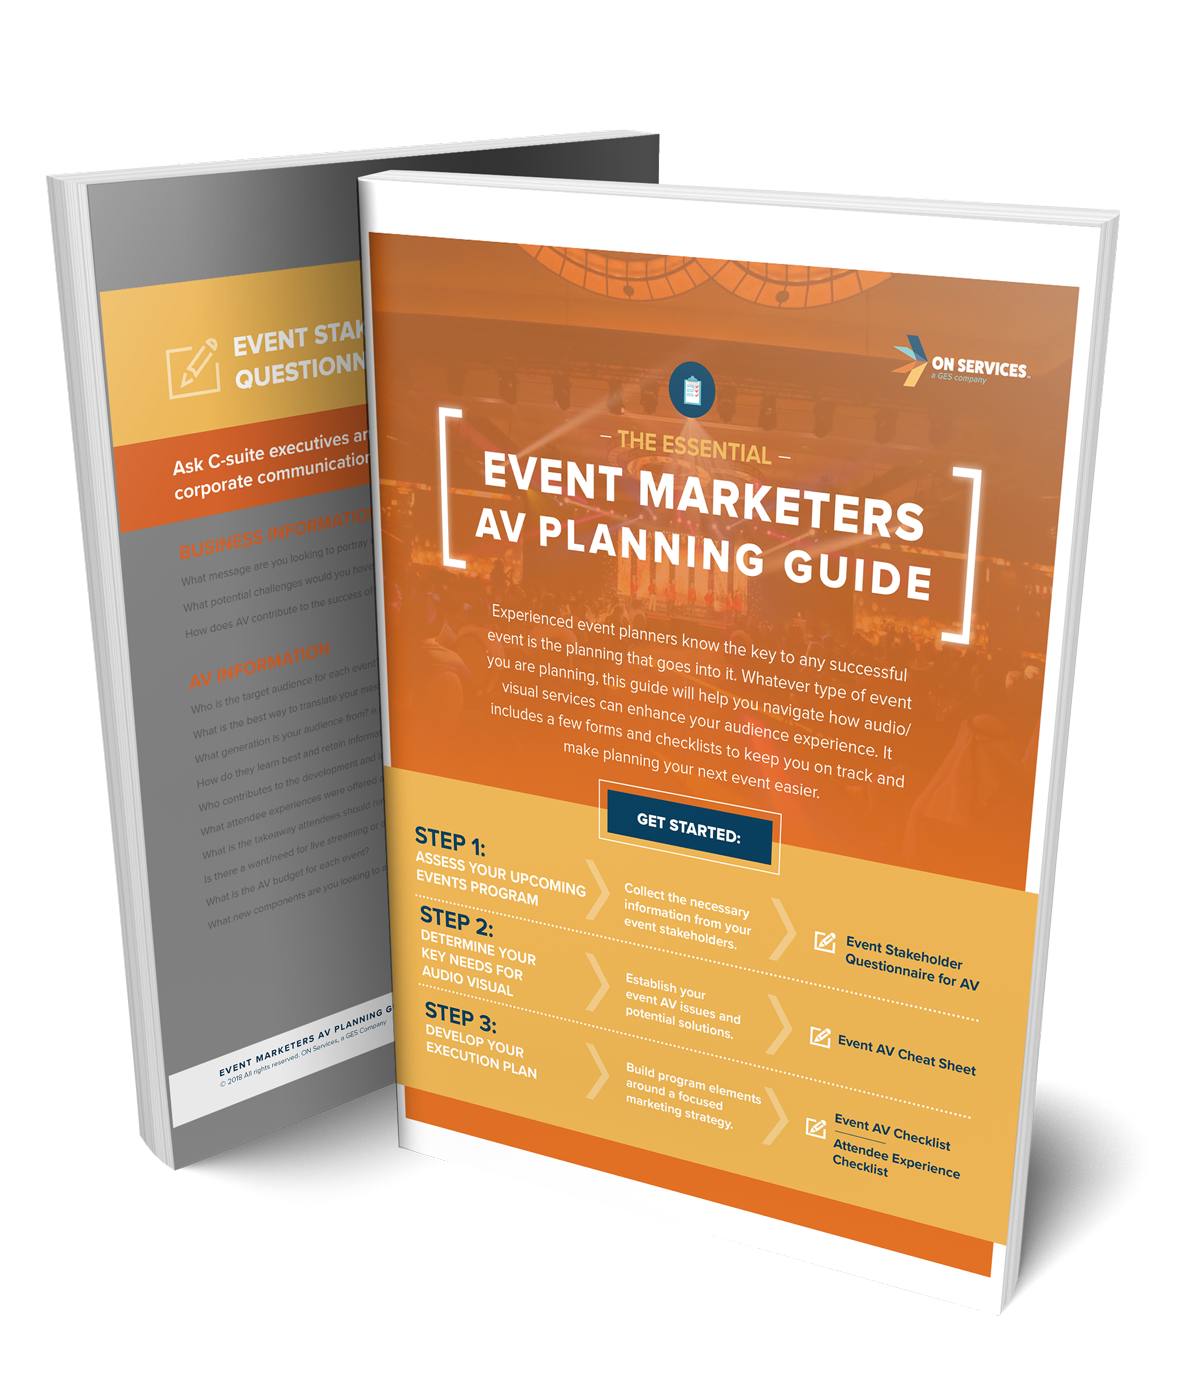 Essential-event-marketer-av-planning-guide